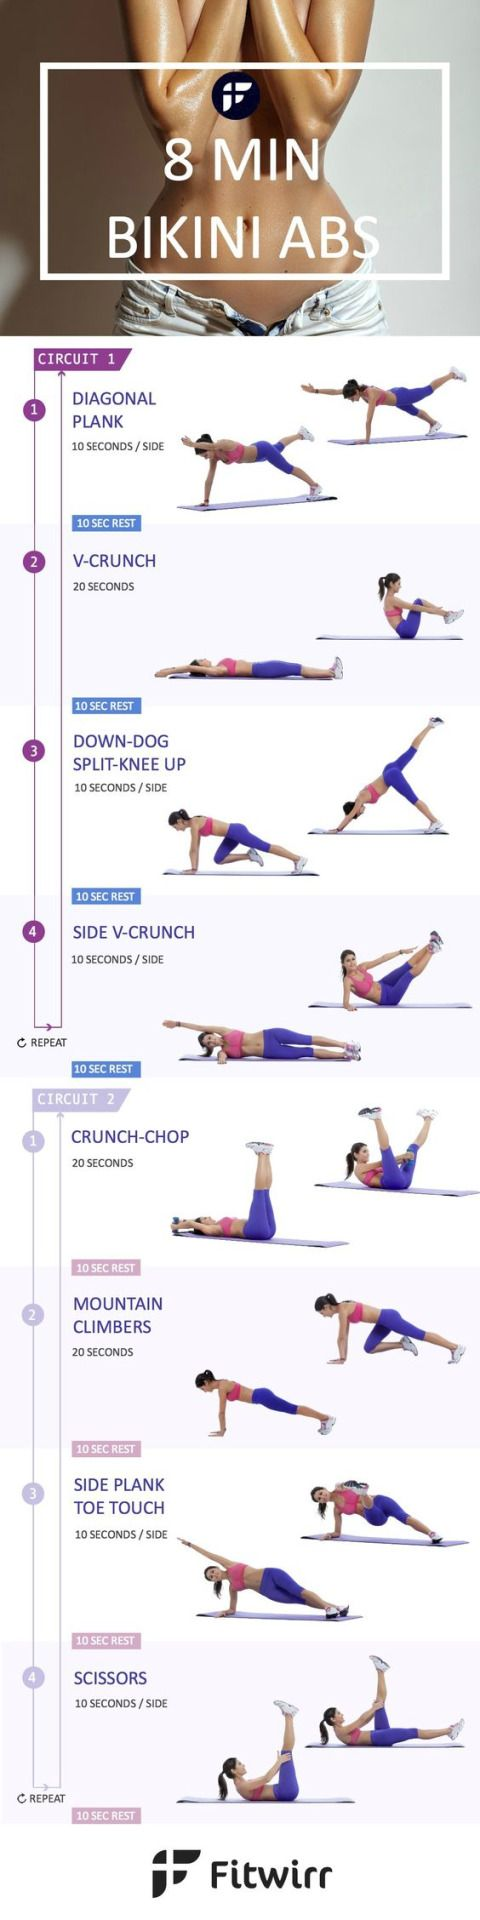 """fitnessforevertips: """" How to Lose Belly Fat Quick with 8 Minute Bikini Ab Workout """""""